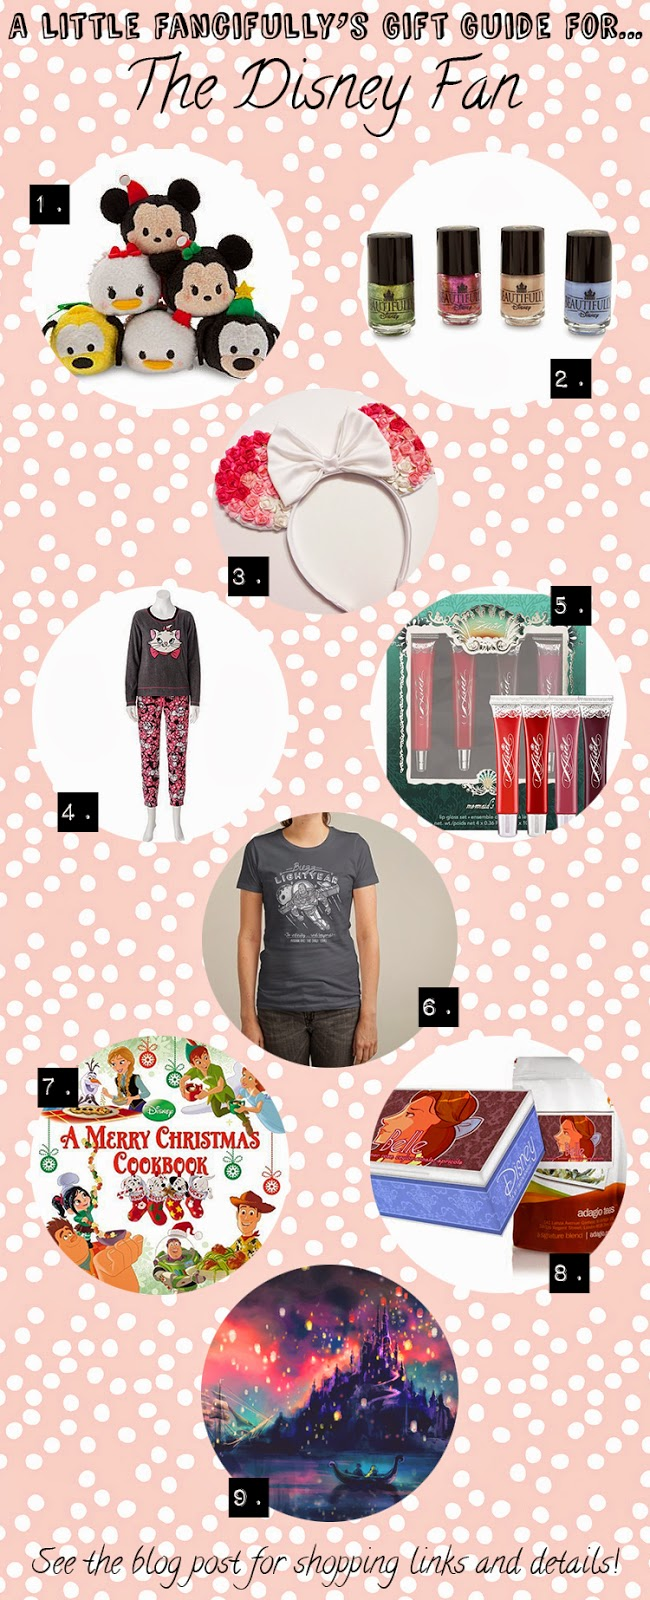 Disney Fanatic Gifts Holiday Gift Guide The Disney